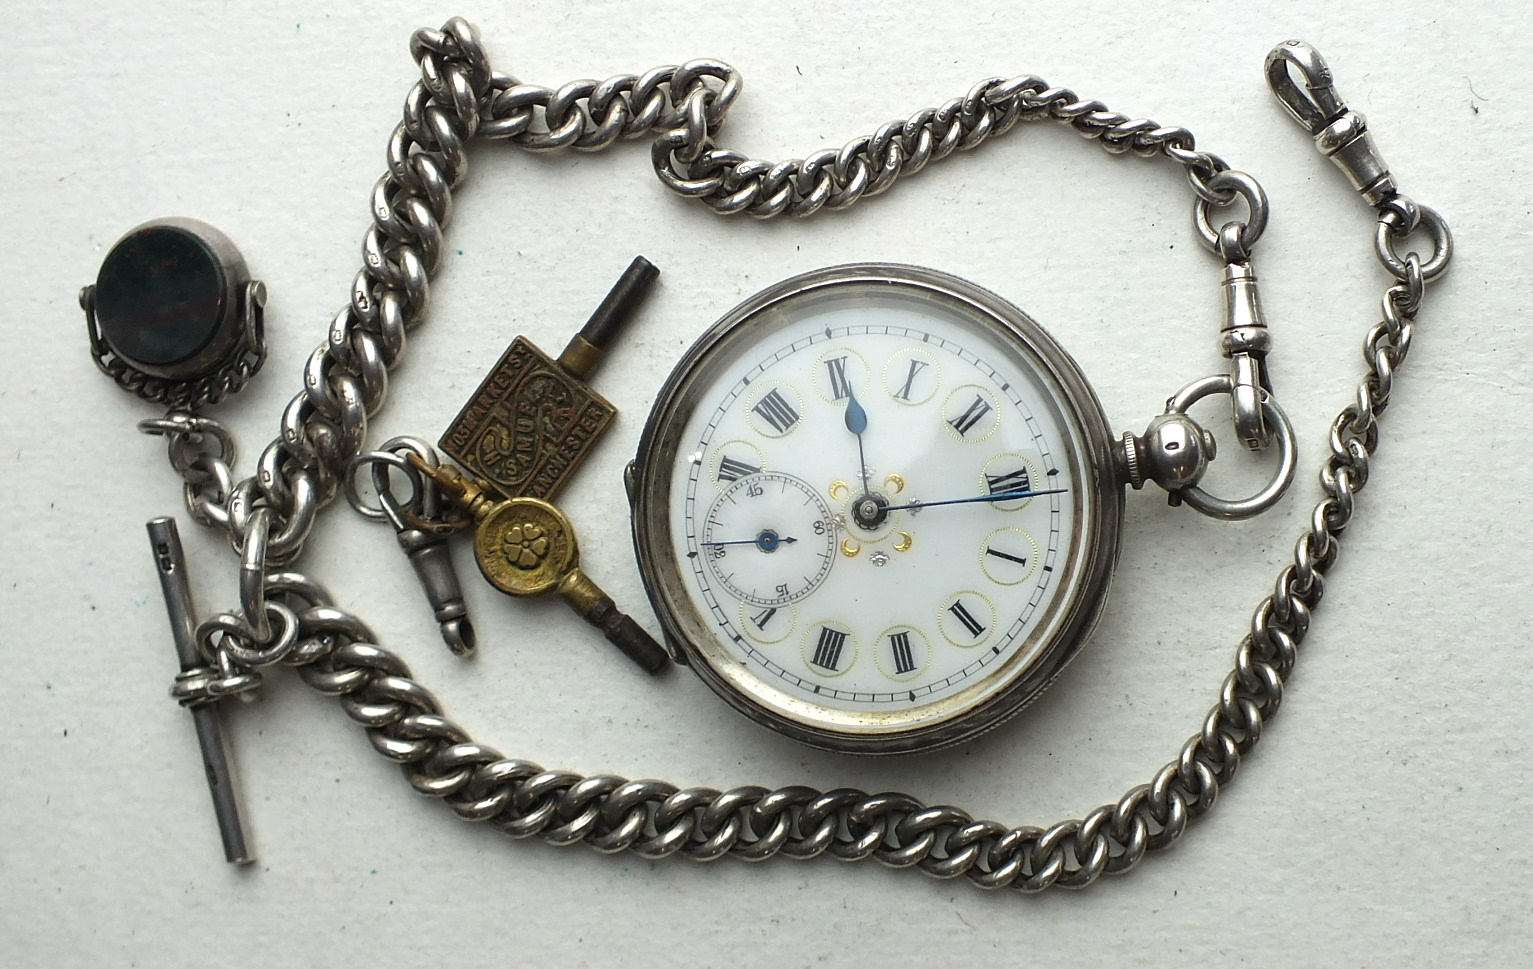 Lot 257 - A silver-cased open-face key-wind pocket watch, the white enamel dial with Roman numerals and